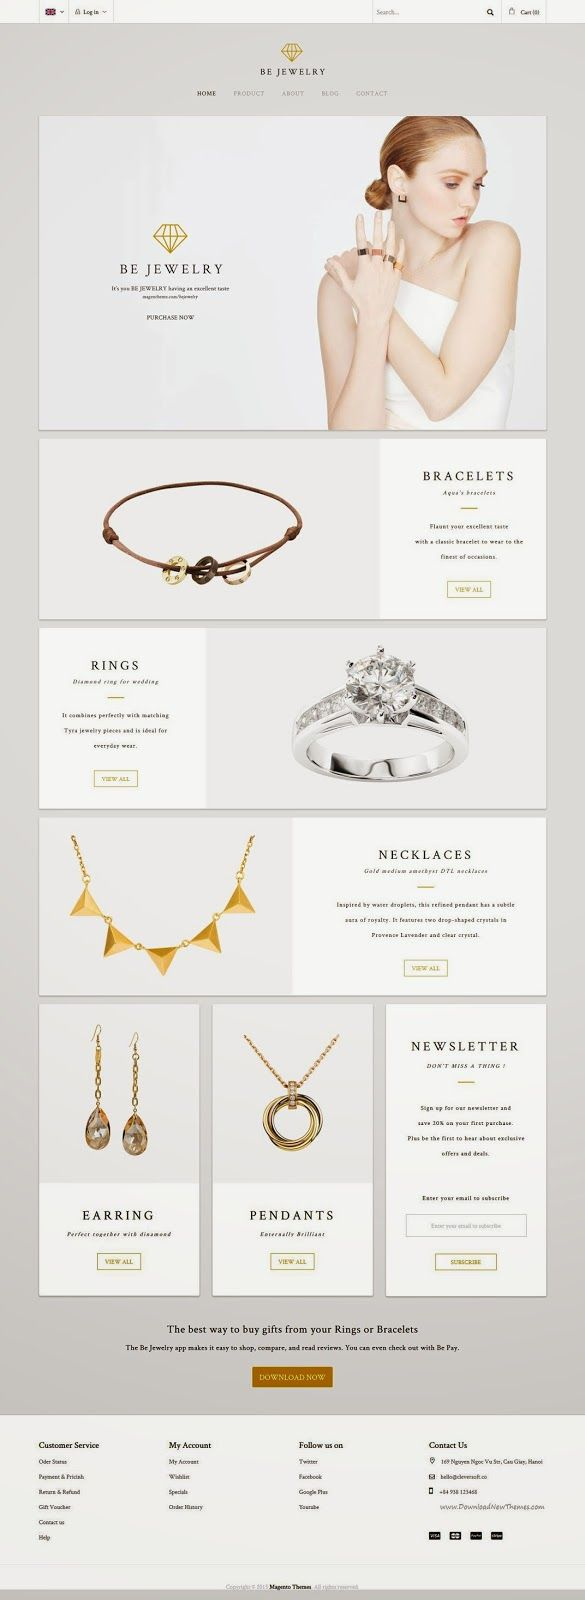 Simple and Clean MT BeJewelry Multipurpose Responsive Magento Theme 2015 #eCommerce Download Now➝ http://www.downloadnewthemes.com/2015/02/mt-bejewelry-multipurpose-responsive.html